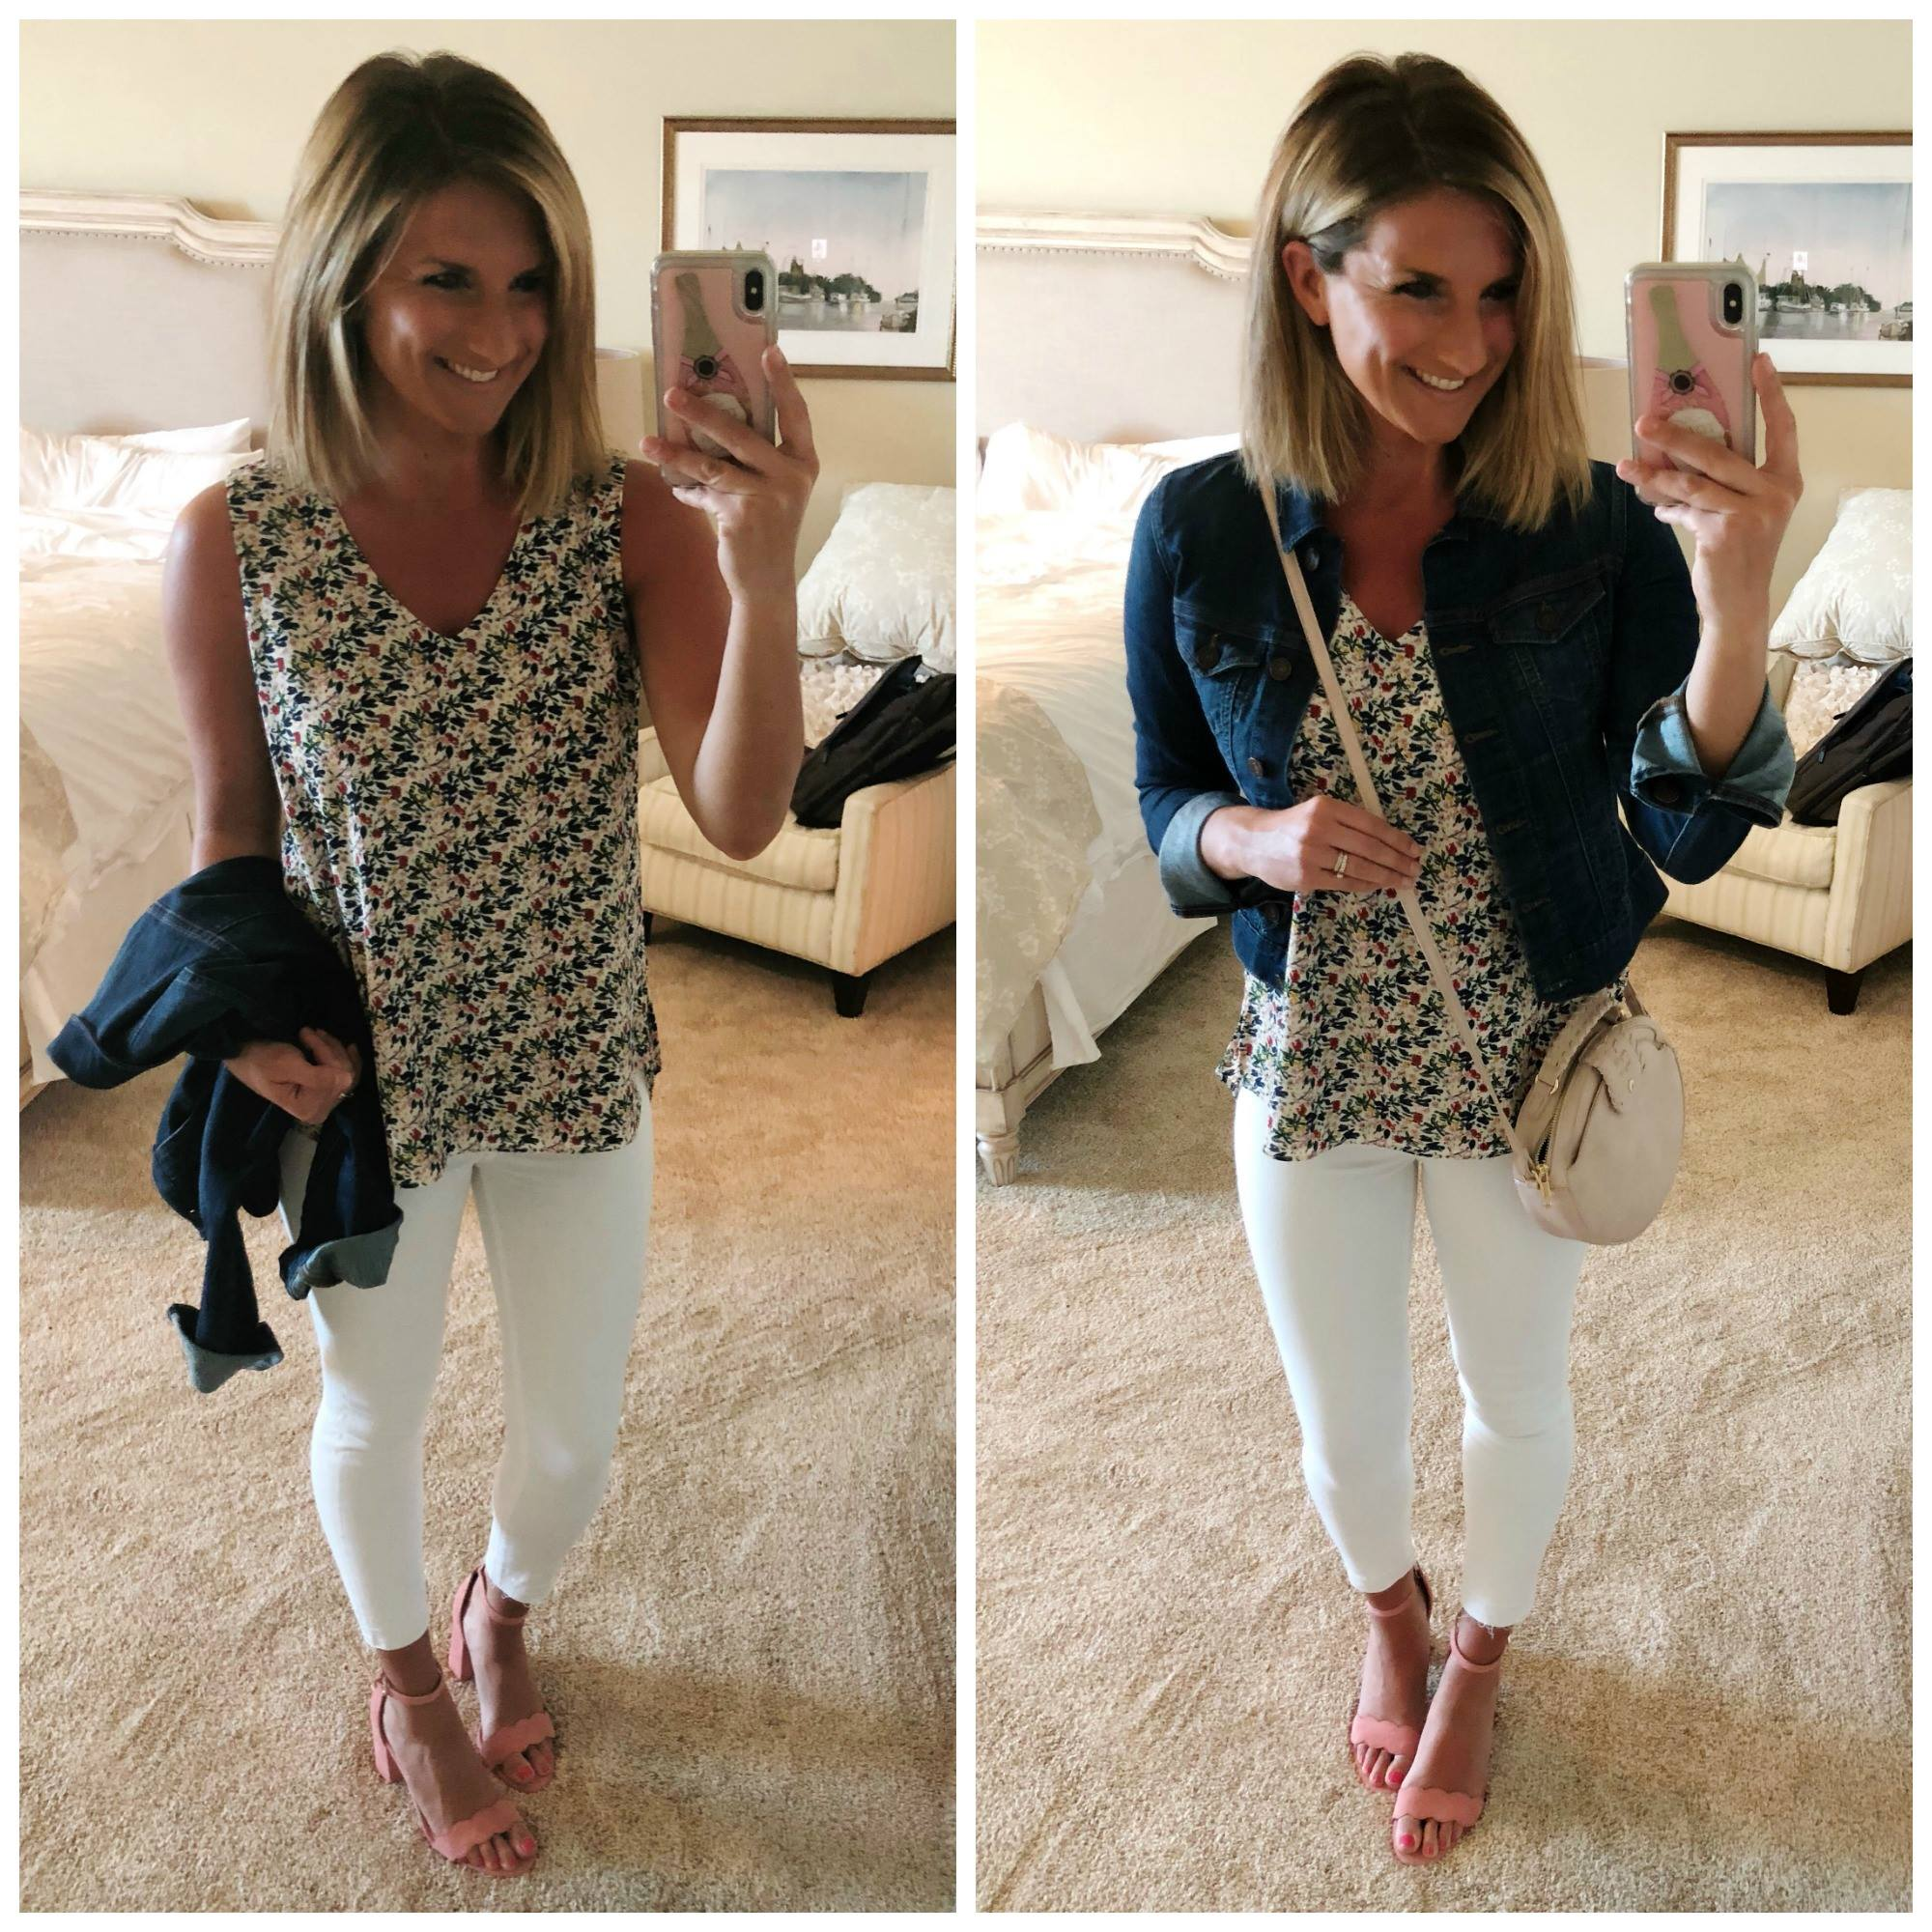 Perfect Spring Outfit // Floral Tank + White Jeggings + Heeled Sandals + Jean Jacket + Crossbody Purse // Spring Fashion